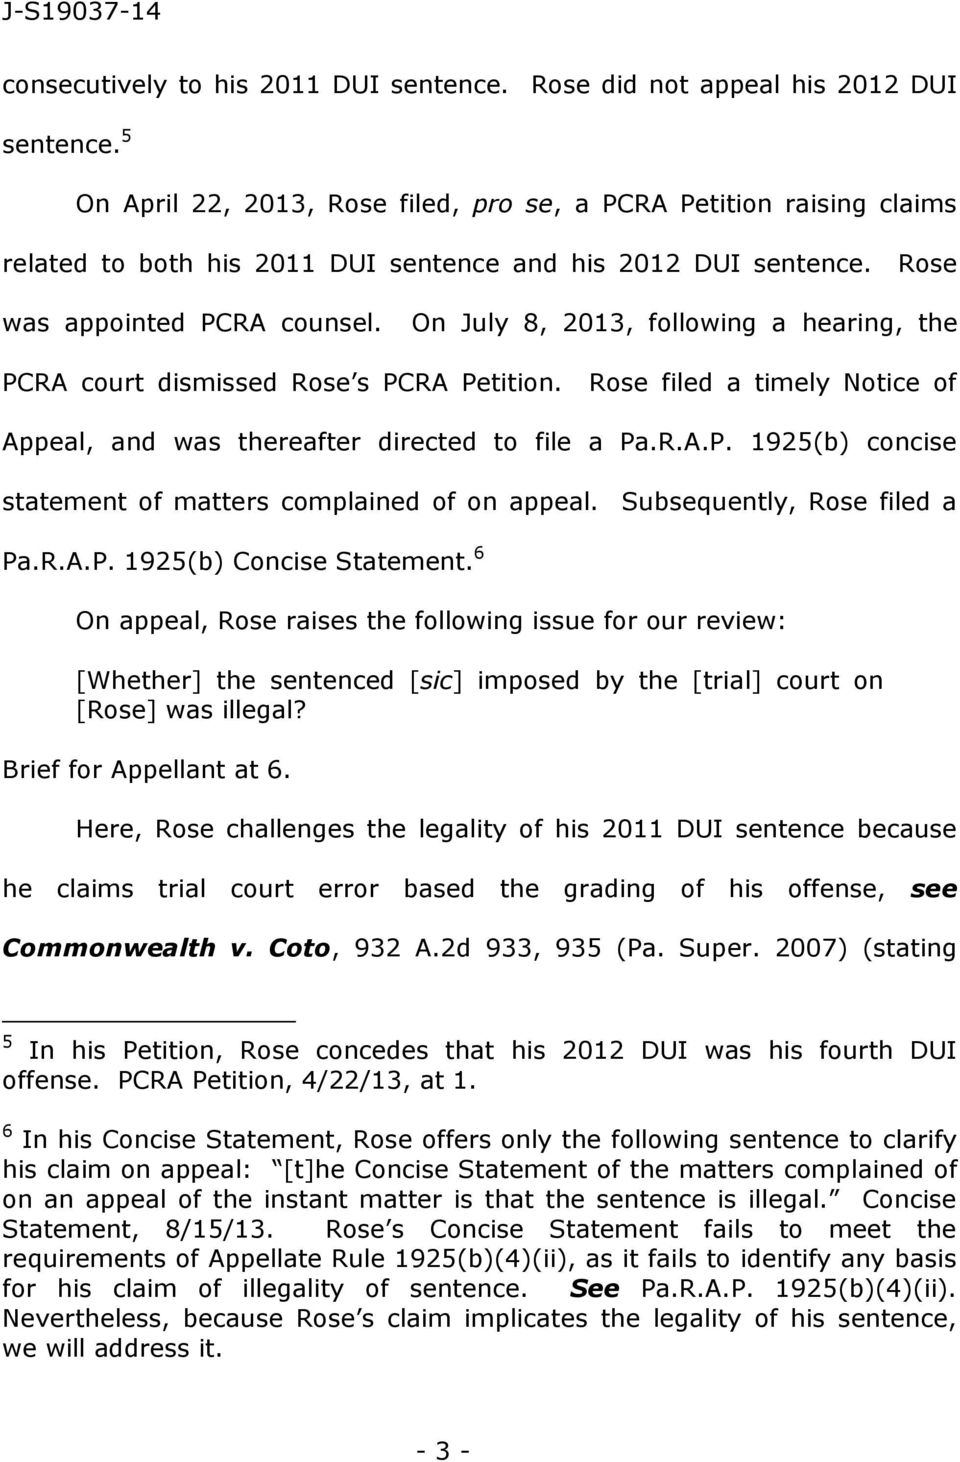 On July 8, 2013, following a hearing, the PCRA court dismissed Rose s PCRA Petition. Rose filed a timely Notice of Appeal, and was thereafter directed to file a Pa.R.A.P. 1925(b) concise statement of matters complained of on appeal.